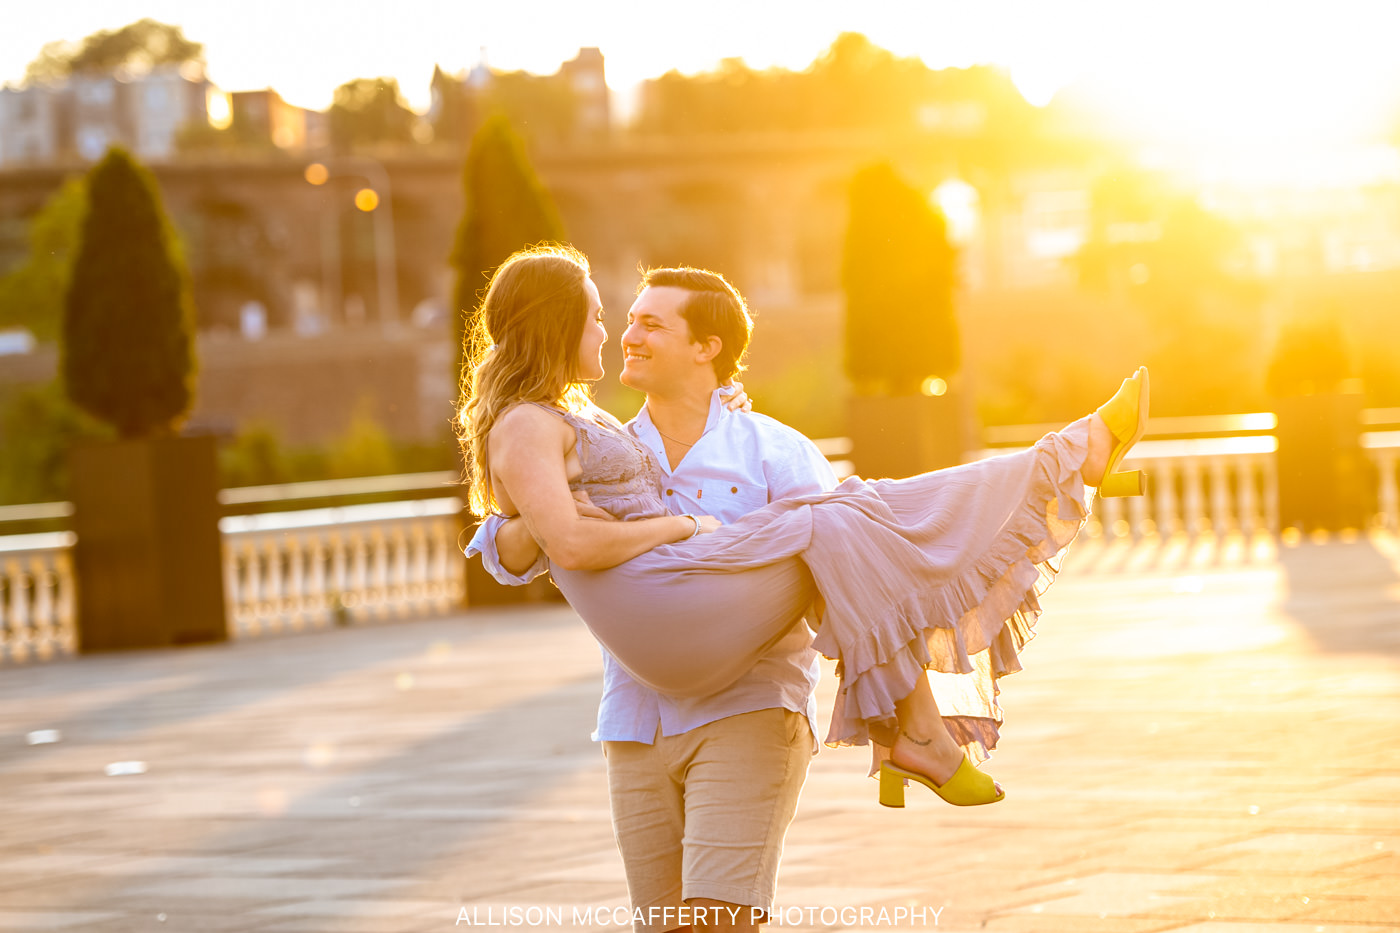 Laura & Zach | Philadelphia Art Museum Engagement